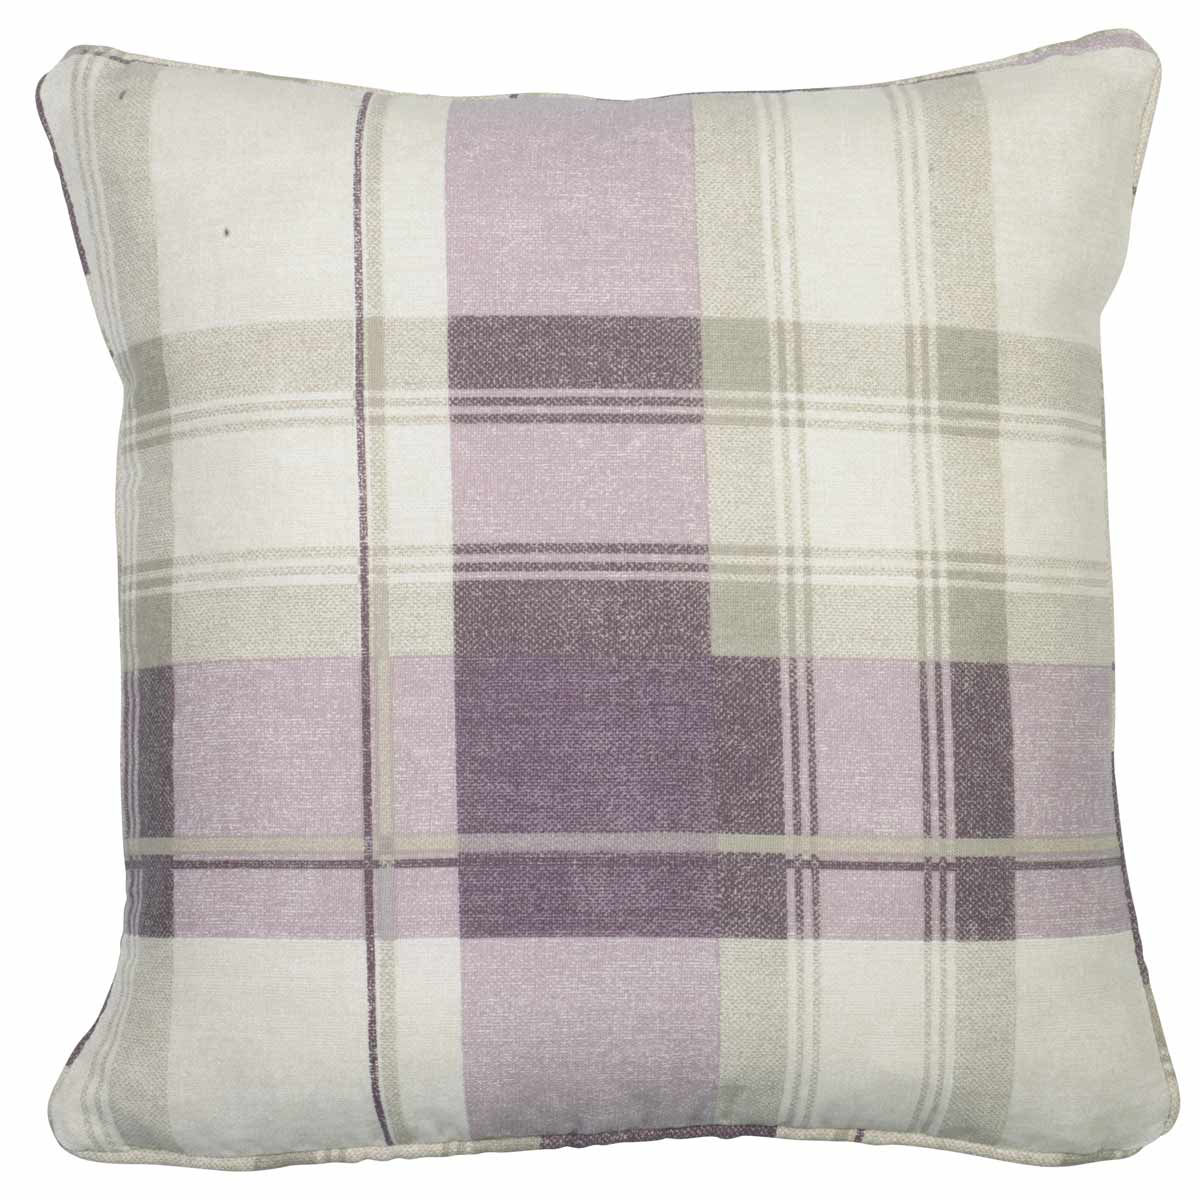 J Rosenthal Cushions And Throws  Balmoral Check C/Cover Plum